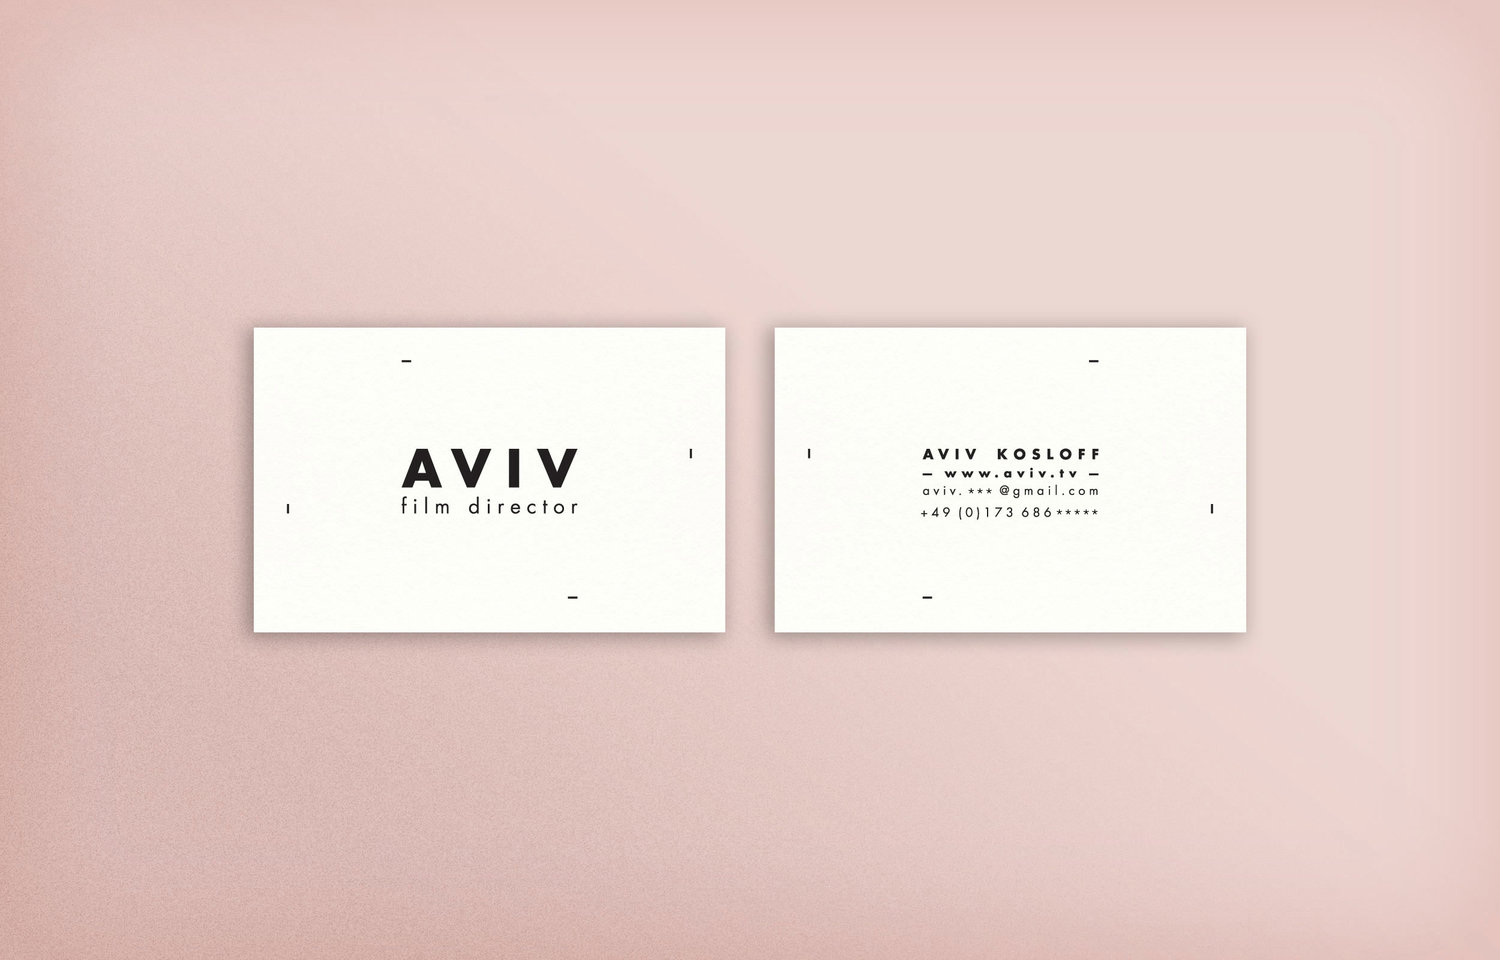 claradelorenzi.com—Aviv Kosloff Business Cards